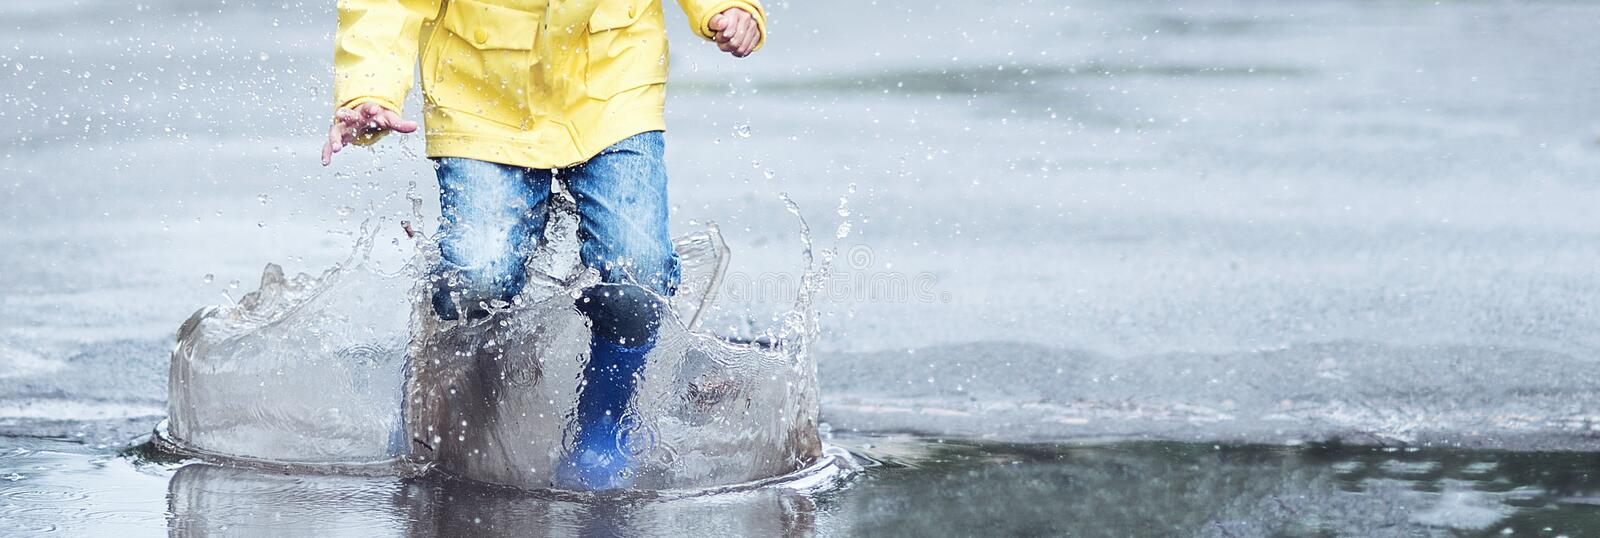 A wet child is jumping in a puddle. Fun on the street. Tempering in summer stock photos